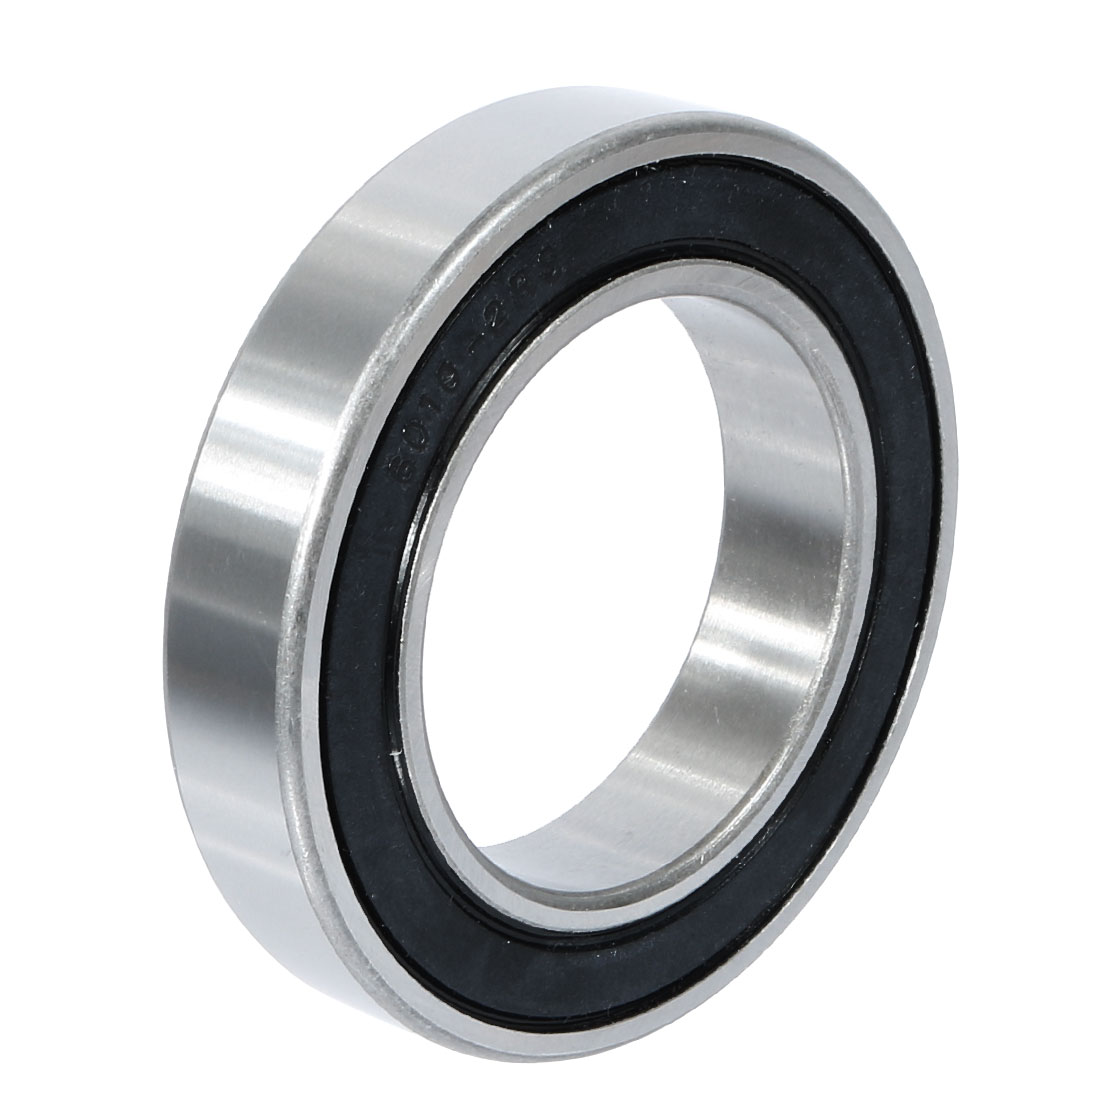 6010-2RS 50mm x 80mm x 16mm Chrome Steel Sealed Wheel Ball Bearing